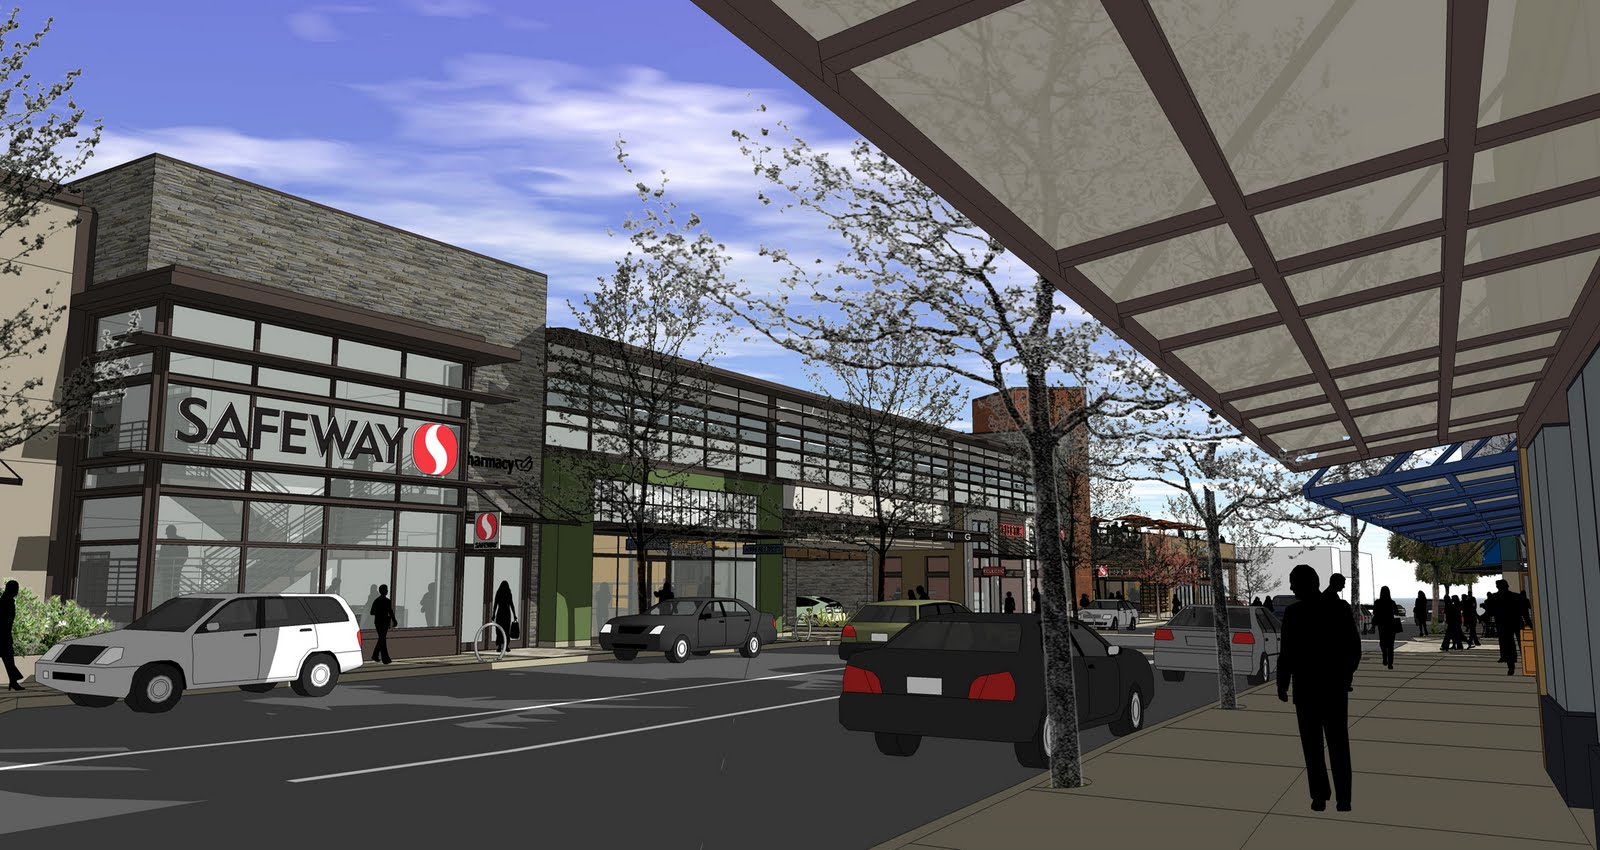 case study safeway Case study: safeway #3250 located on king street in alexandria, virginia this project included the demolition of an existing store and associated site work in its place, ccg constructed a new 62,000 sf lifestyle safeway and a 3,000 sf retail building.